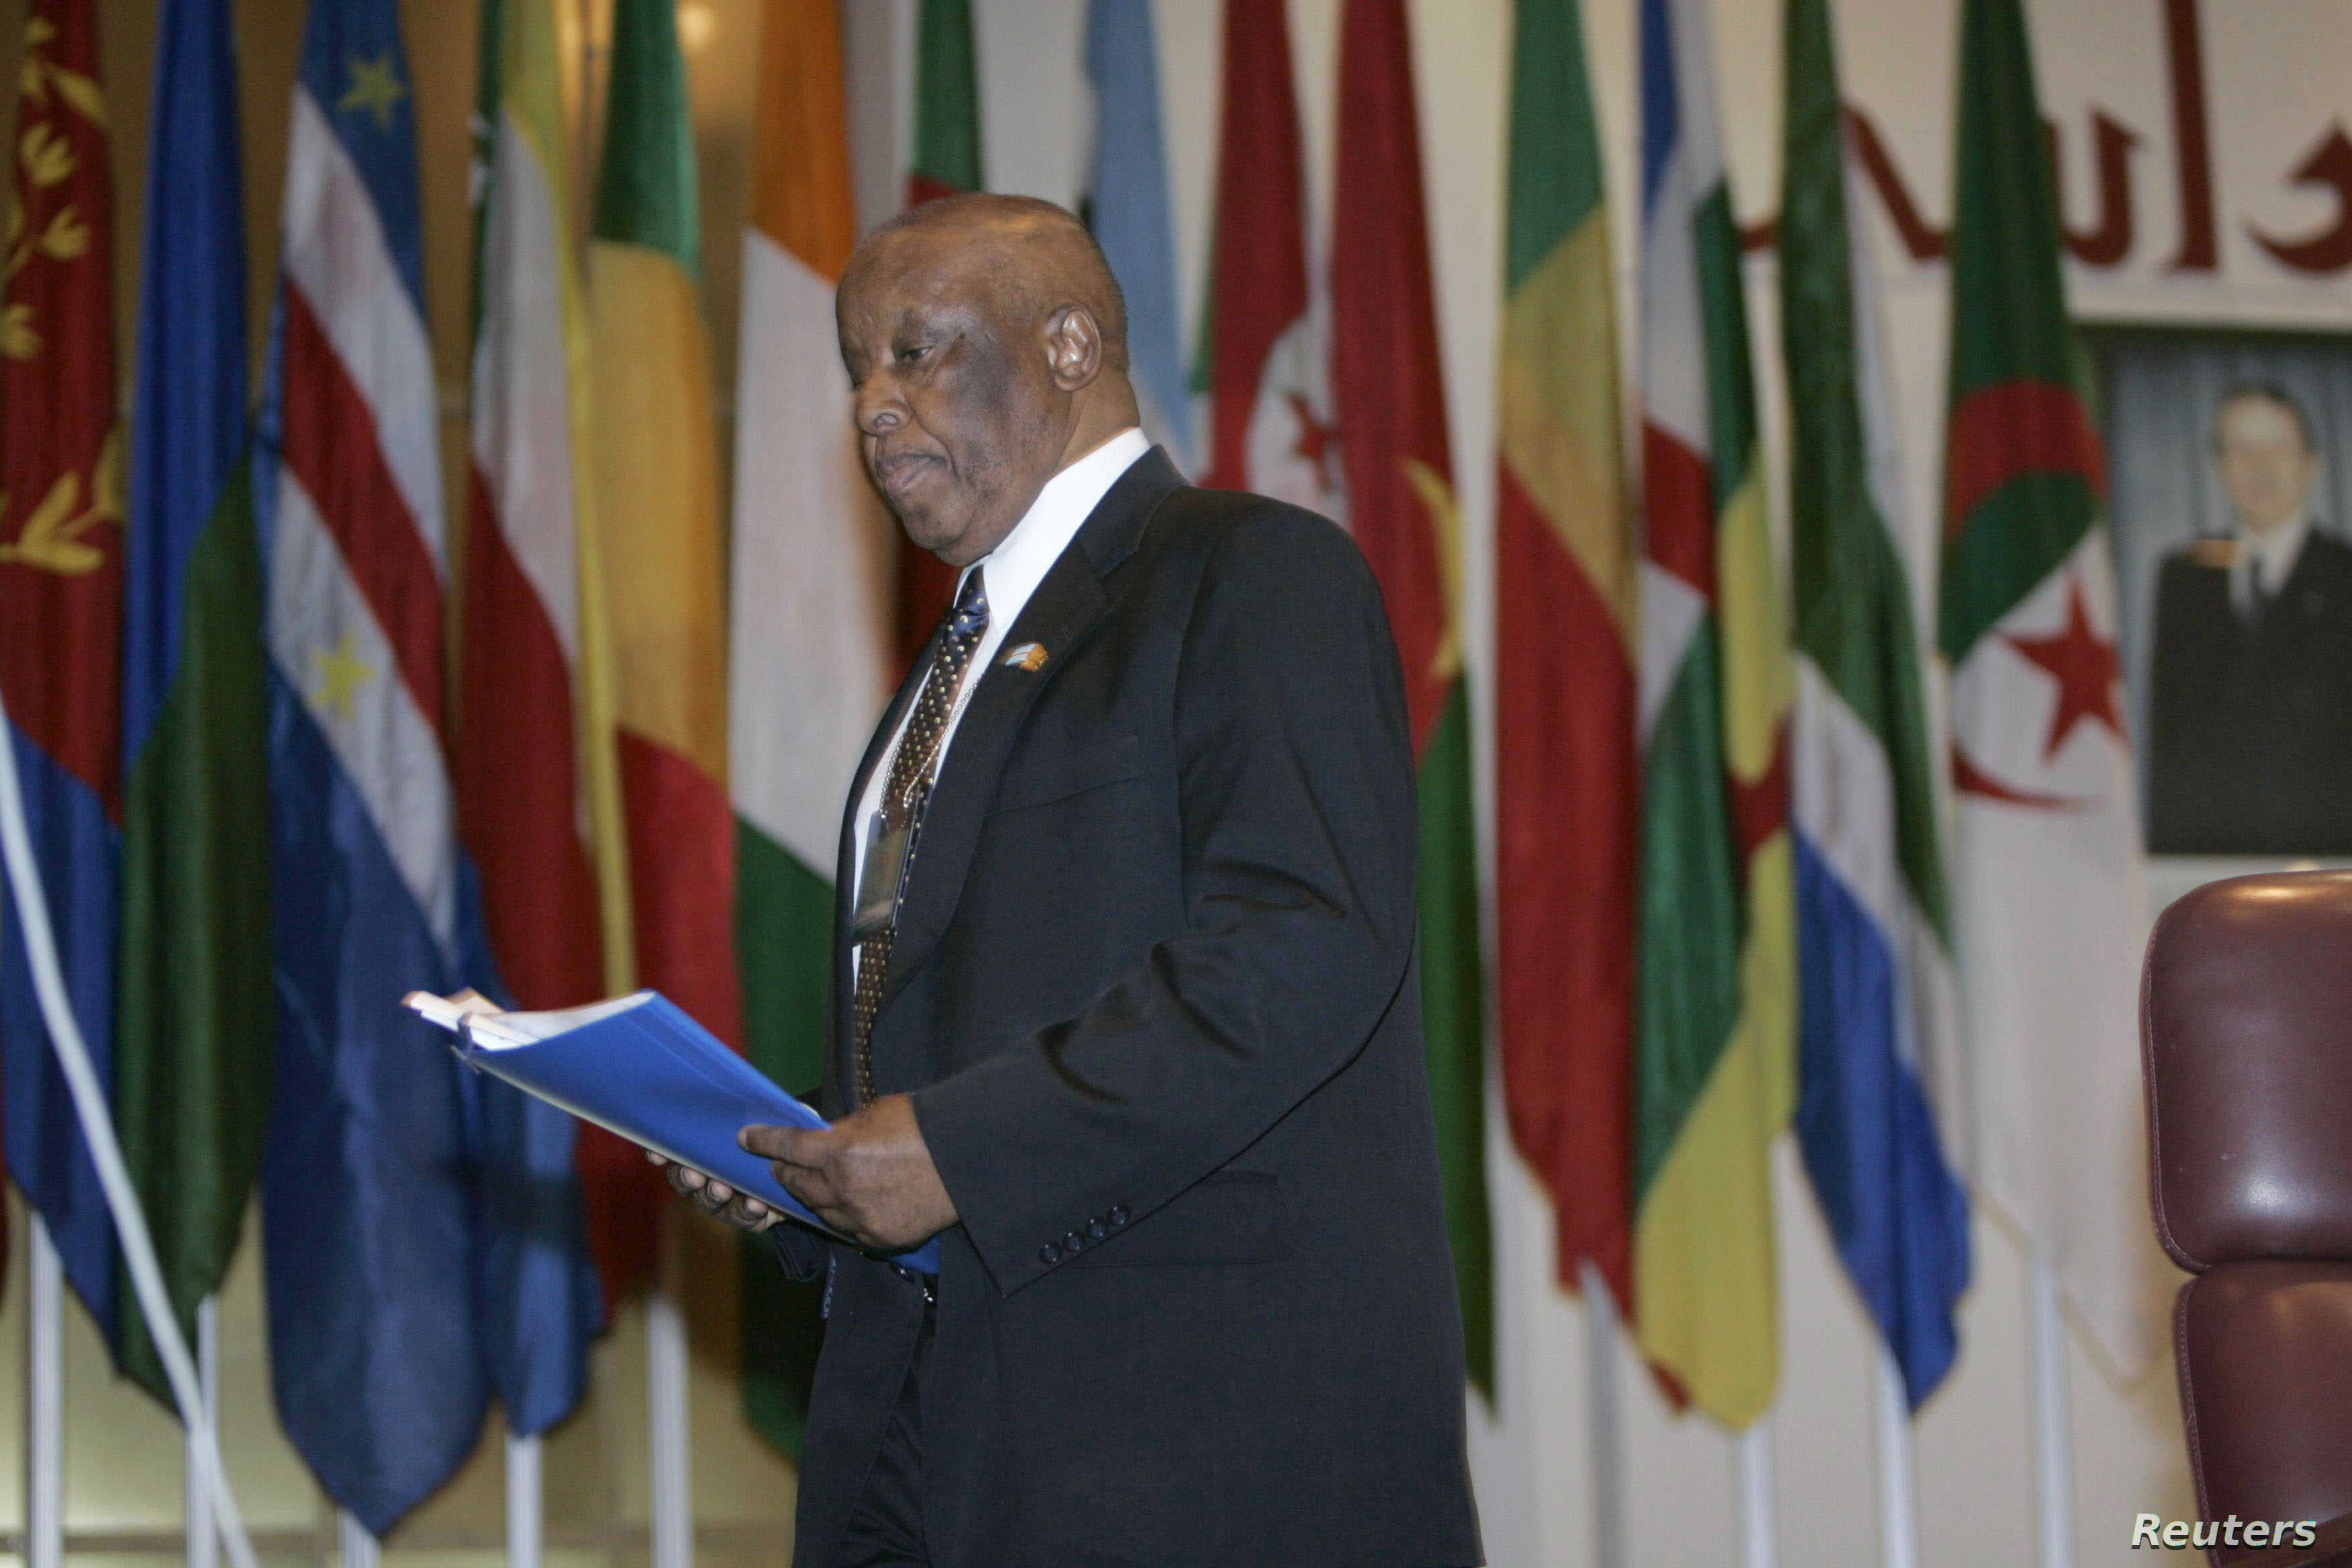 Former President of Botswana and U.N. special envoy Festus Mogae attends climate change conference in Algiers, Nov. 19, 2008.